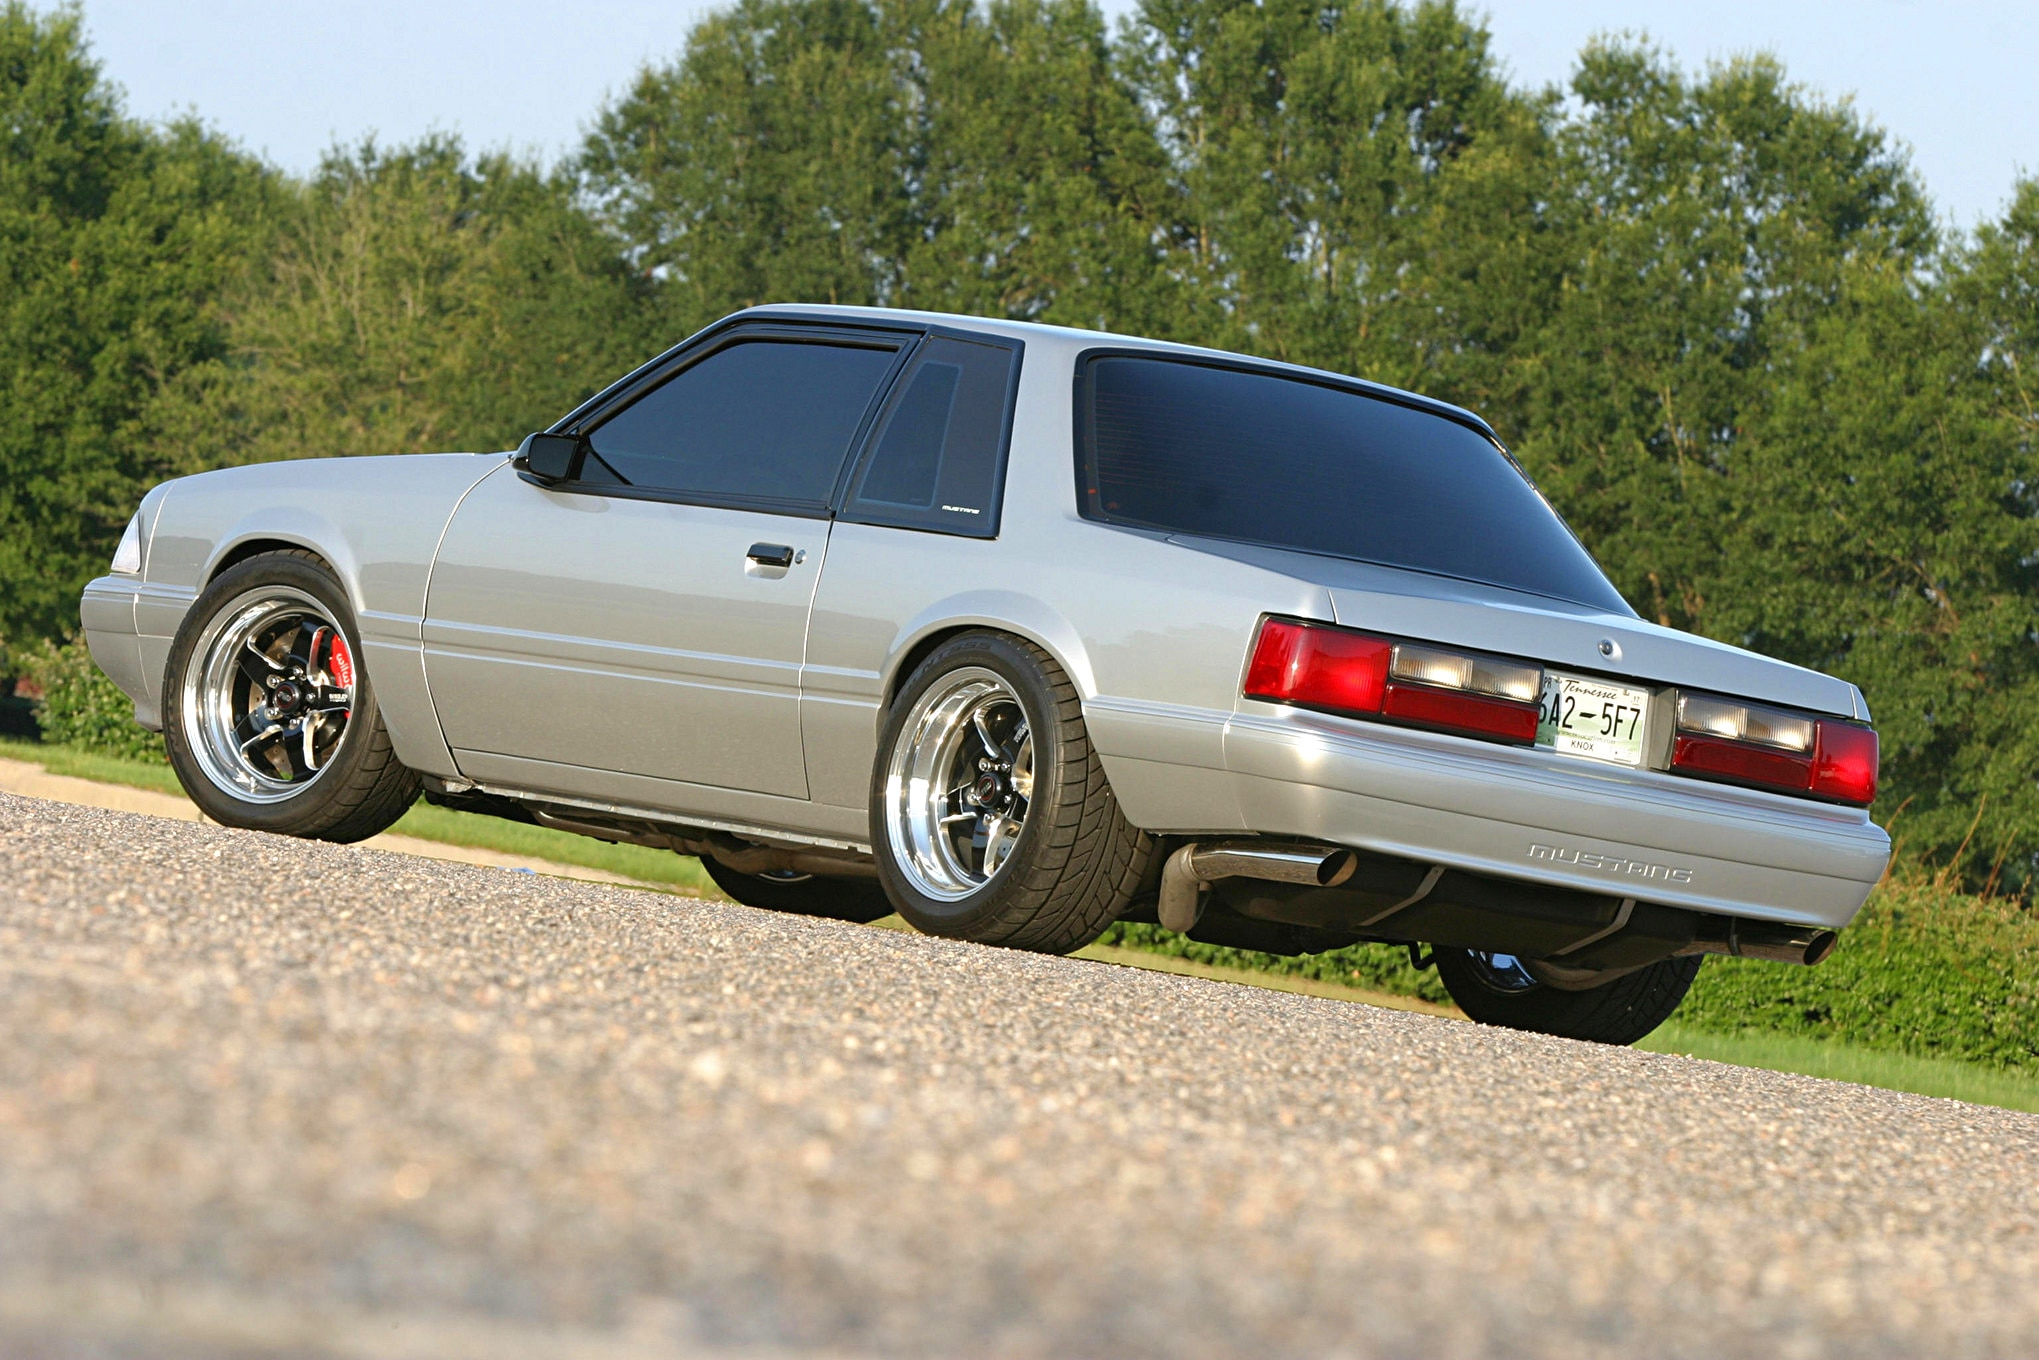 1991 Ford Mustang Lx Fox Body Rear